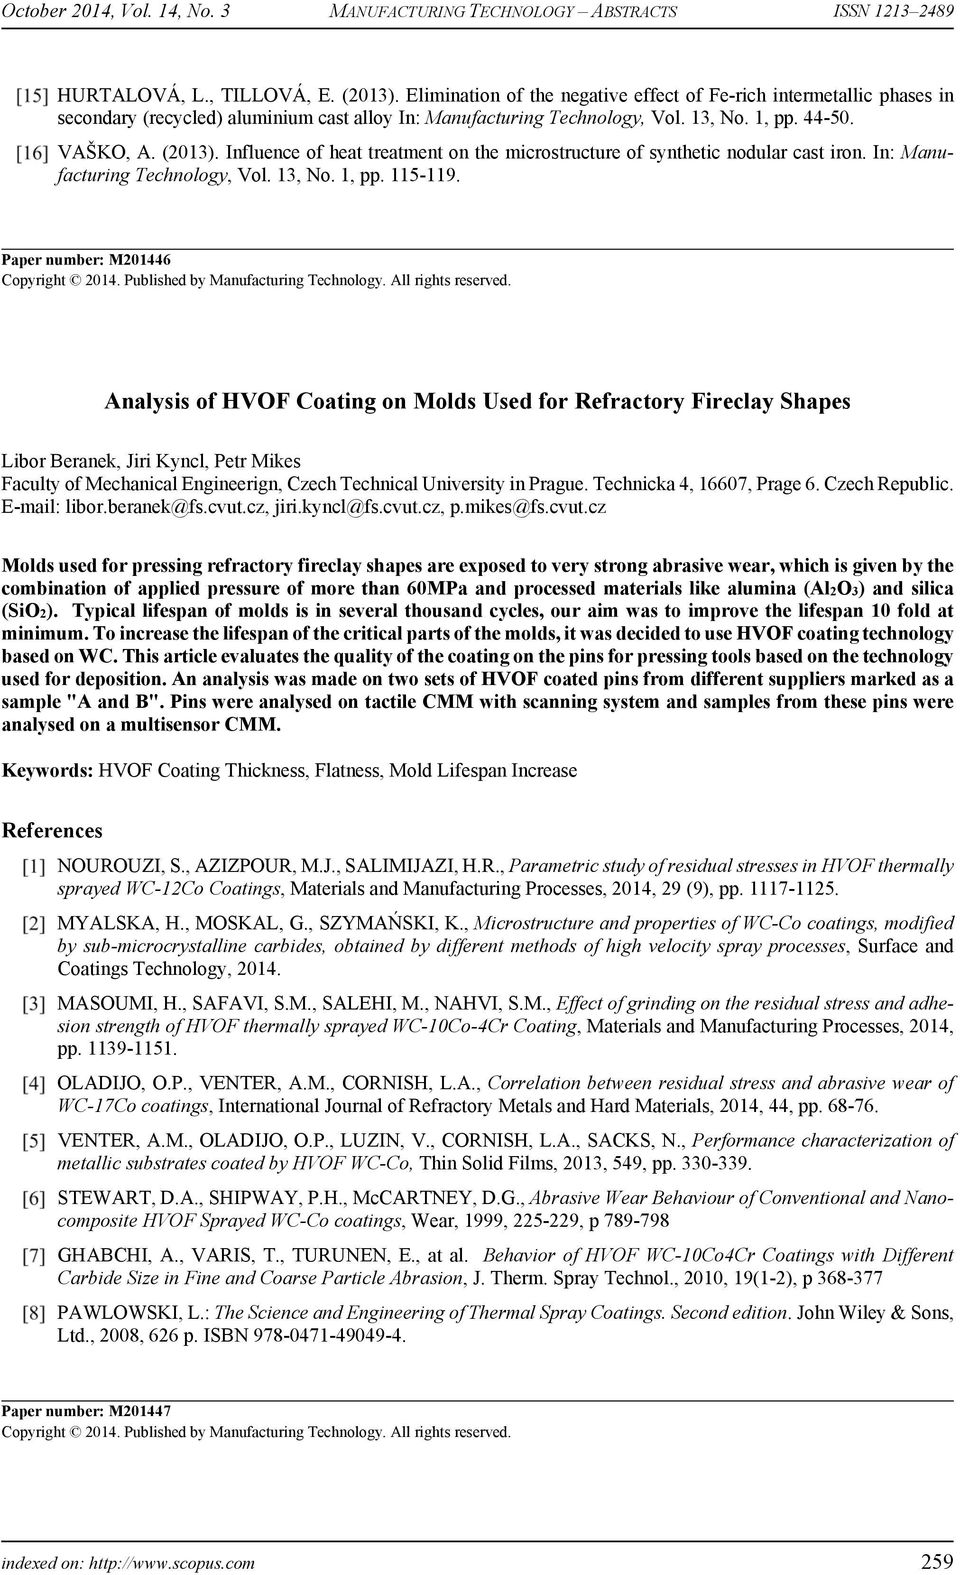 Paper number: M201446 Analysis of HVOF Coating on Molds Used for Refractory Fireclay Shapes Libor Beranek, Jiri Kyncl, Petr Mikes Faculty of Mechanical Engineerign, Czech Technical University in